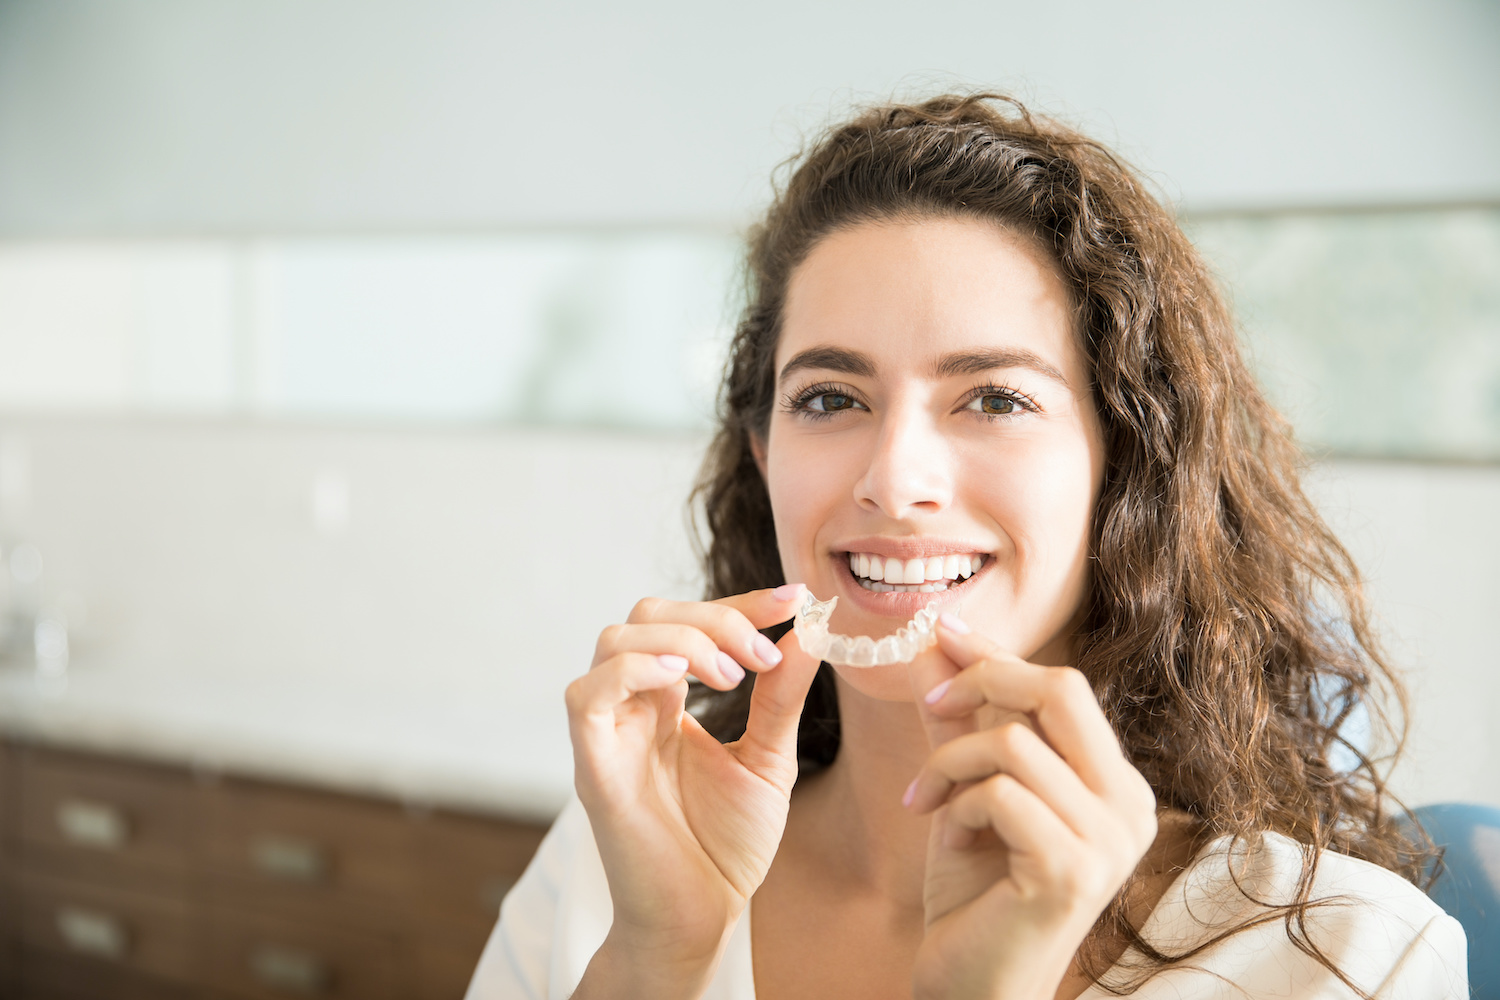 What Are Invisalign Attachments? Will I Need Them For My Treatment?